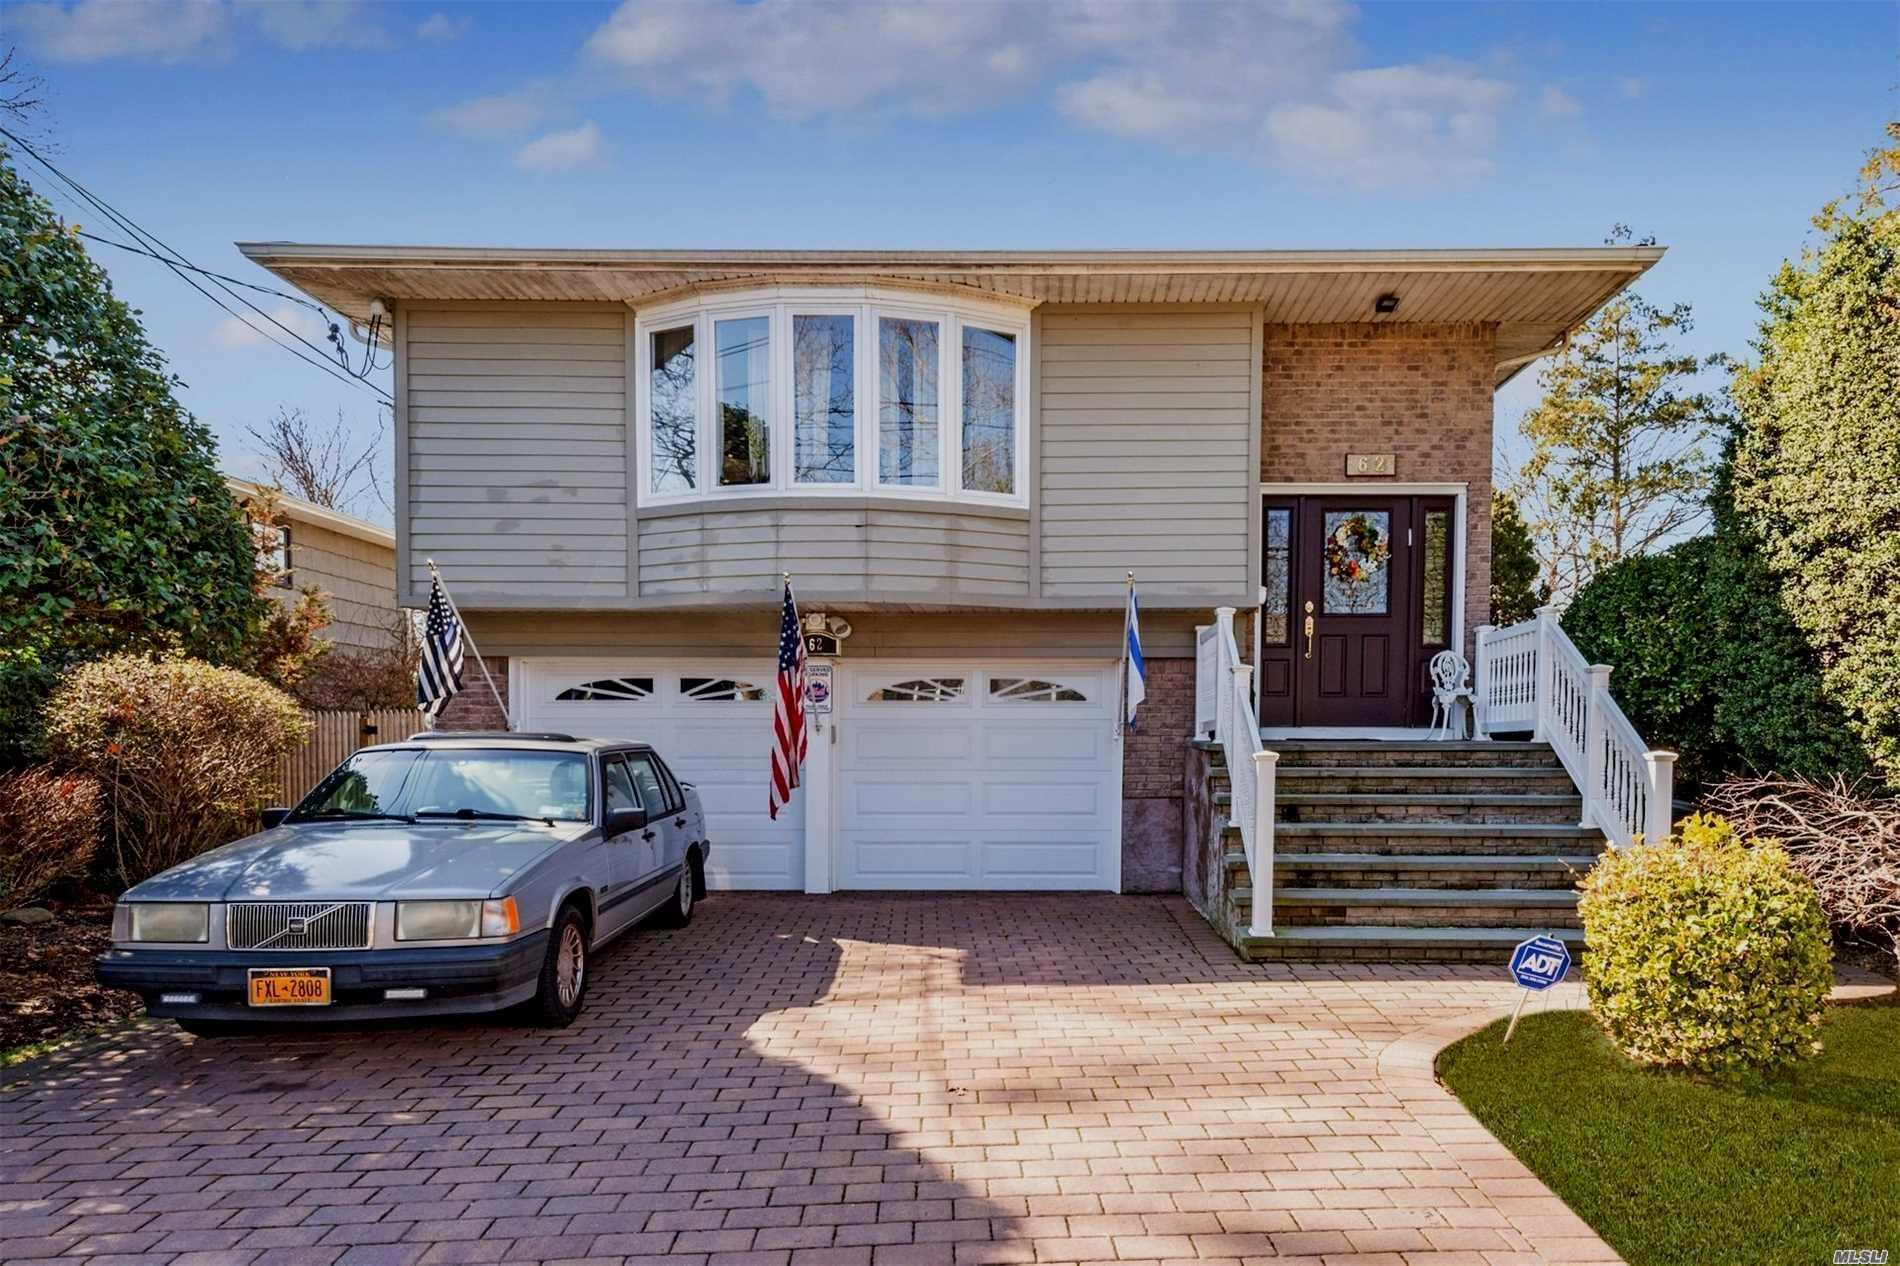 Beautiful All Updated H/R. Ideal For Mo/Dau (Permit Required). Windows And Doors All Replaced.Incl Garage Doors. Bathrooms Redone. Radiant Heat In Eik. Hw Flrs In Lr, Dr And Brs. All Stone Driveway, Walkway And Stairs To Front Door.Certified Green Features Incl Top Of The Line Gas Heating And Fujitzer Ductless Ac . Fabulous 14'X16' Sunroom With Silding Doors . Move Right In.